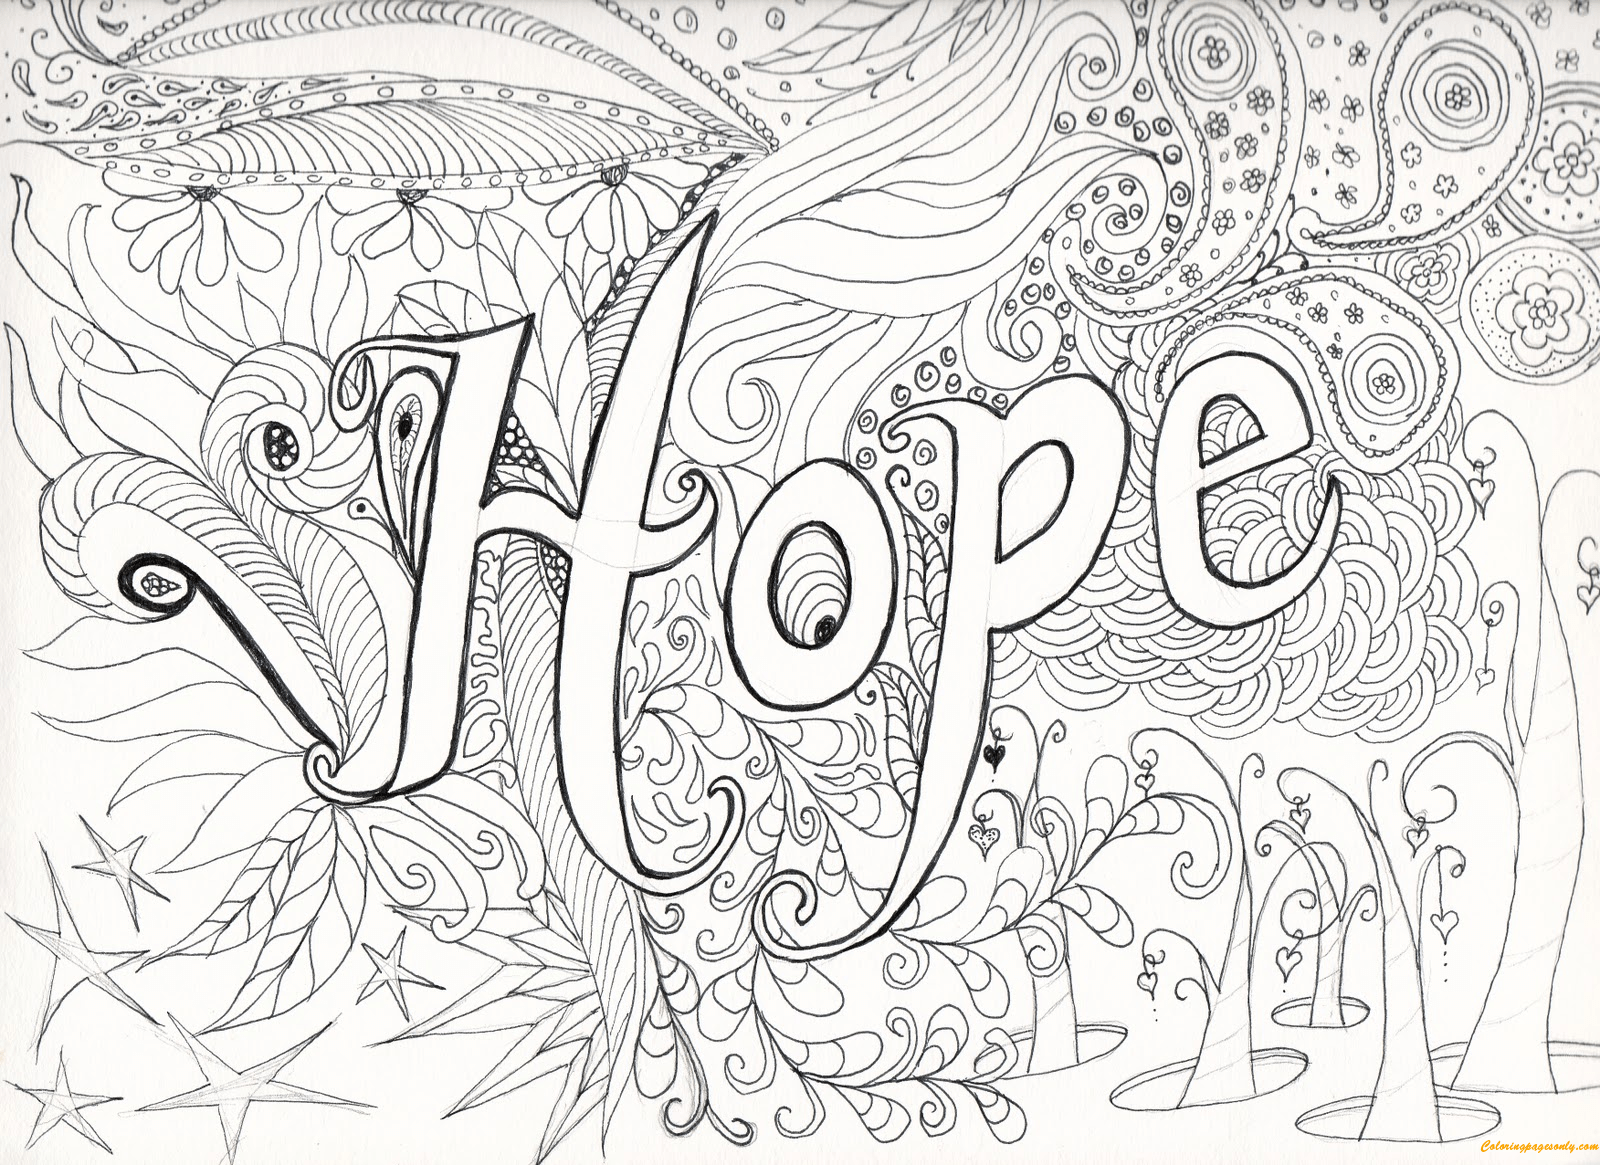 Letter Hope Coloring Page Free Coloring Pages Online